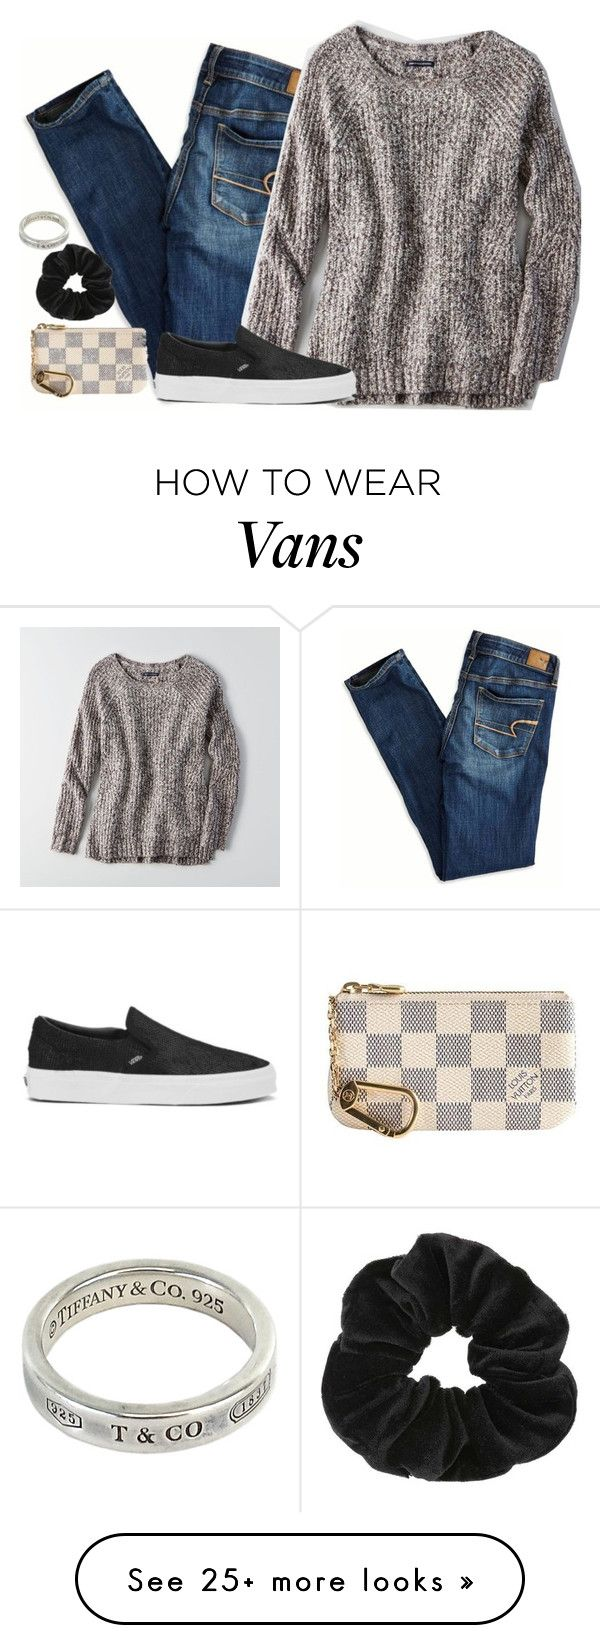 """Untitled #341"" by aidanwilliamson on Polyvore featuring American Eagle Outfitters, Miss Selfridge, Tiffany & Co., Louis Vuitton and Vans"